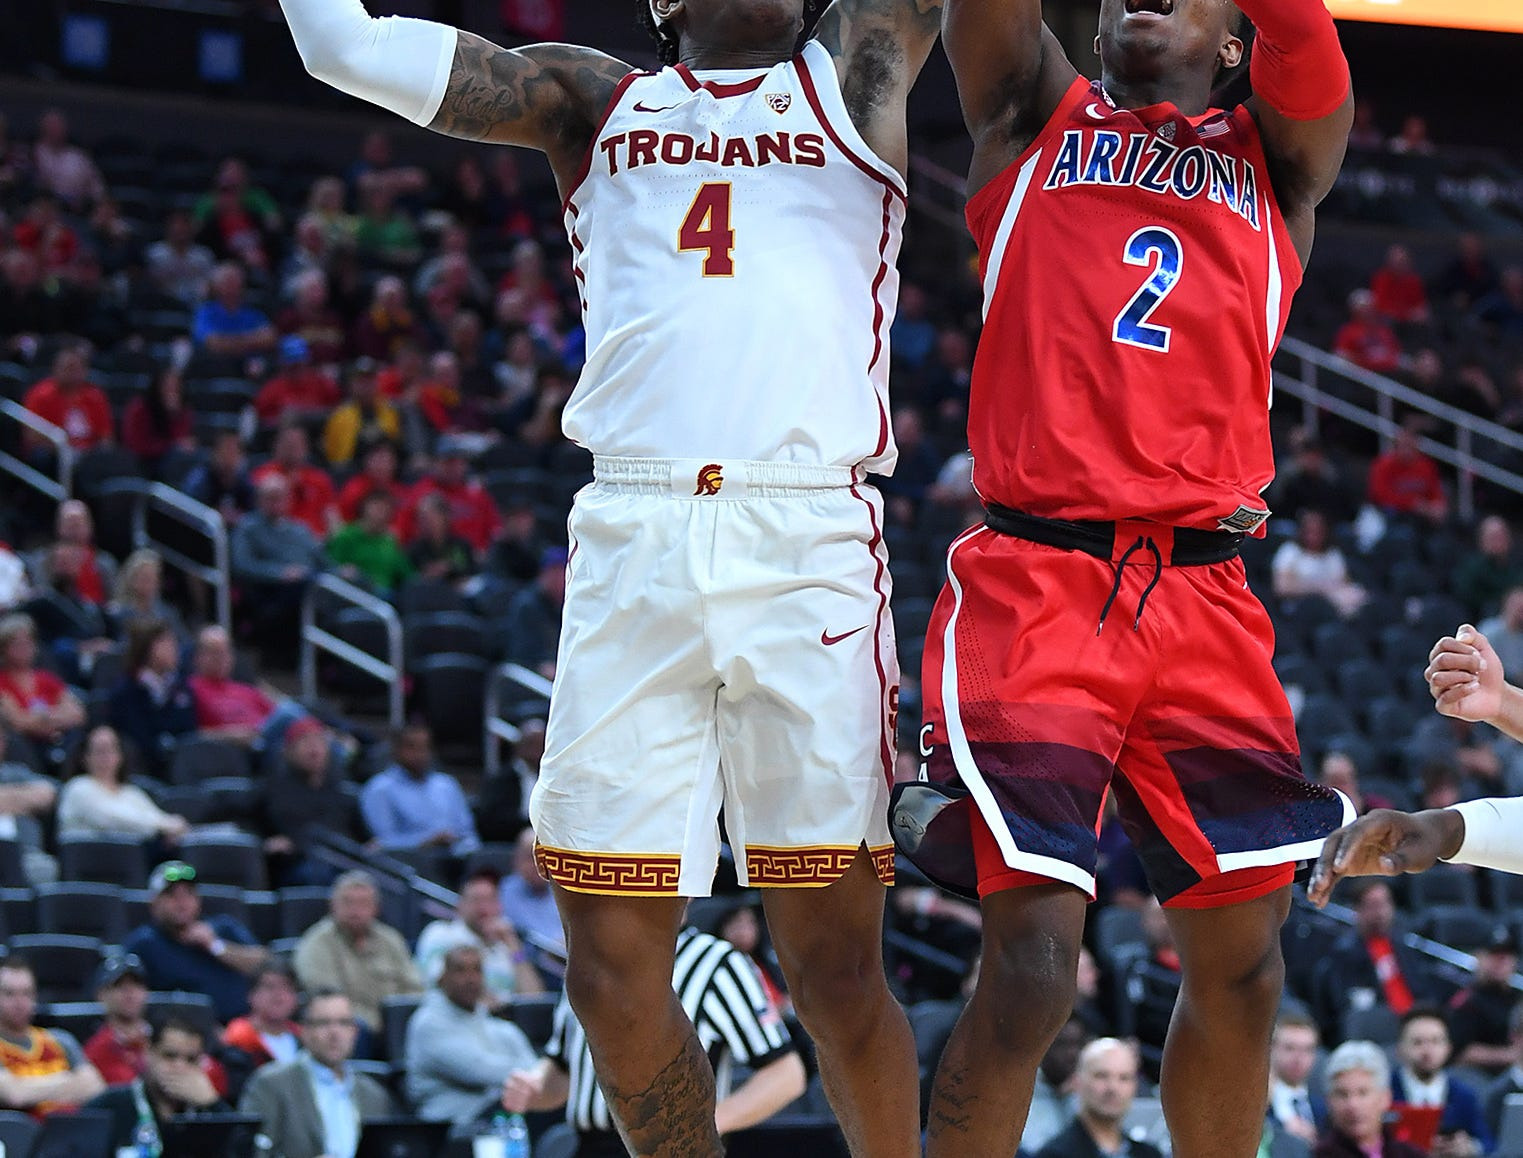 Mar 13, 2019; Las Vegas, NV, United States; USC Trojans guard Kevin Porter Jr. (4) blocks a shot by Arizona Wildcats guard Brandon Williams (2) during the first half of a Pac-12 conference tournament game at T-Mobile Arena. Mandatory Credit: Stephen R. Sylvanie-USA TODAY Sports